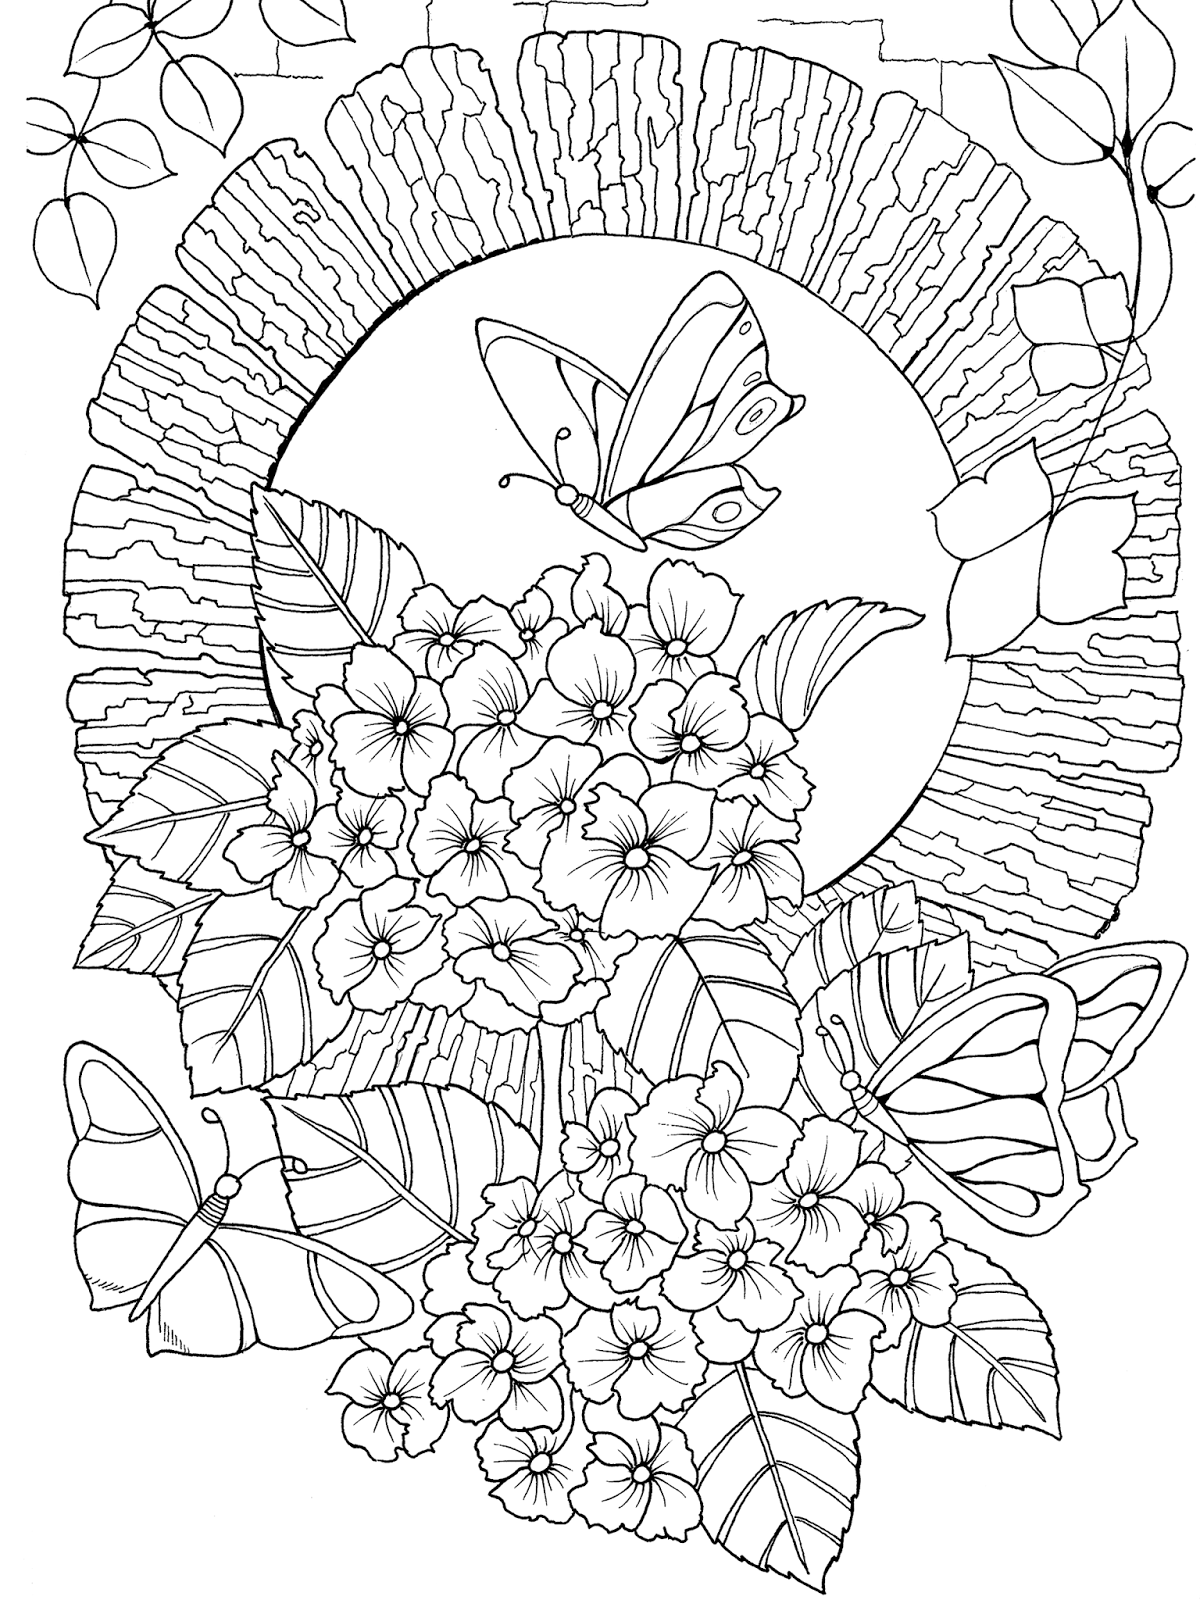 An Adult Colouring Book Blog Creating Ink Drawings For